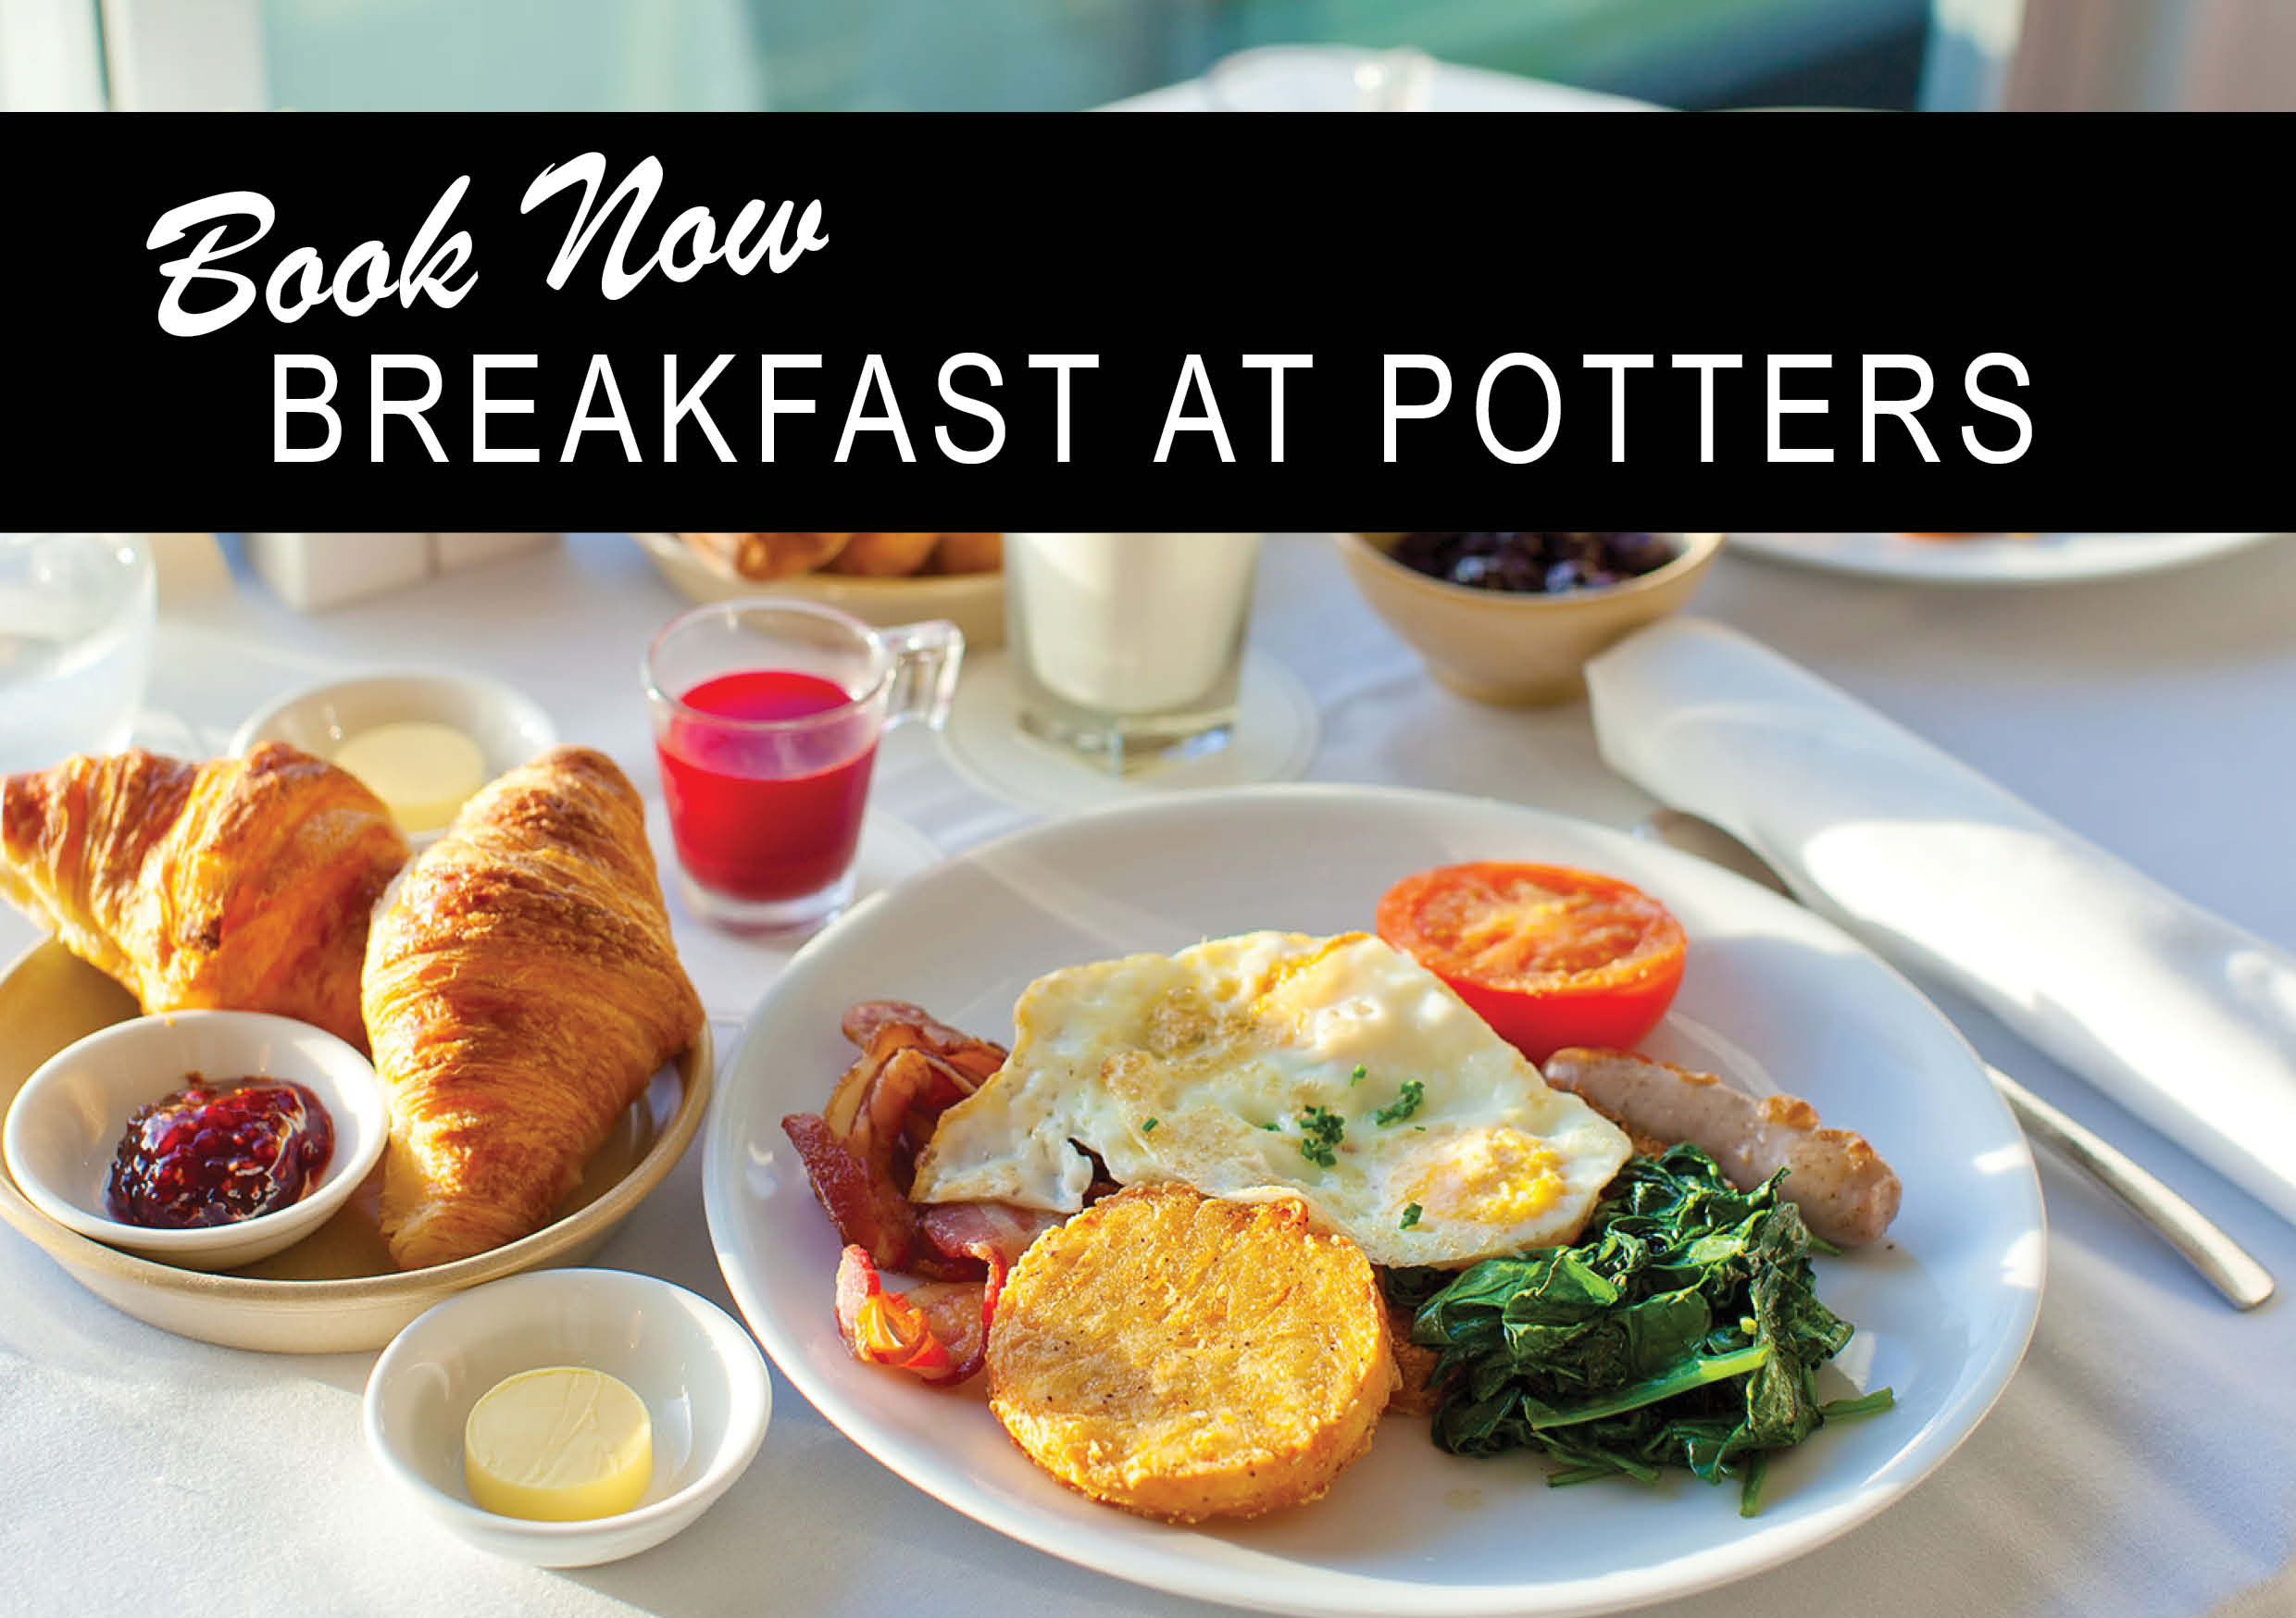 Breakfast at potters